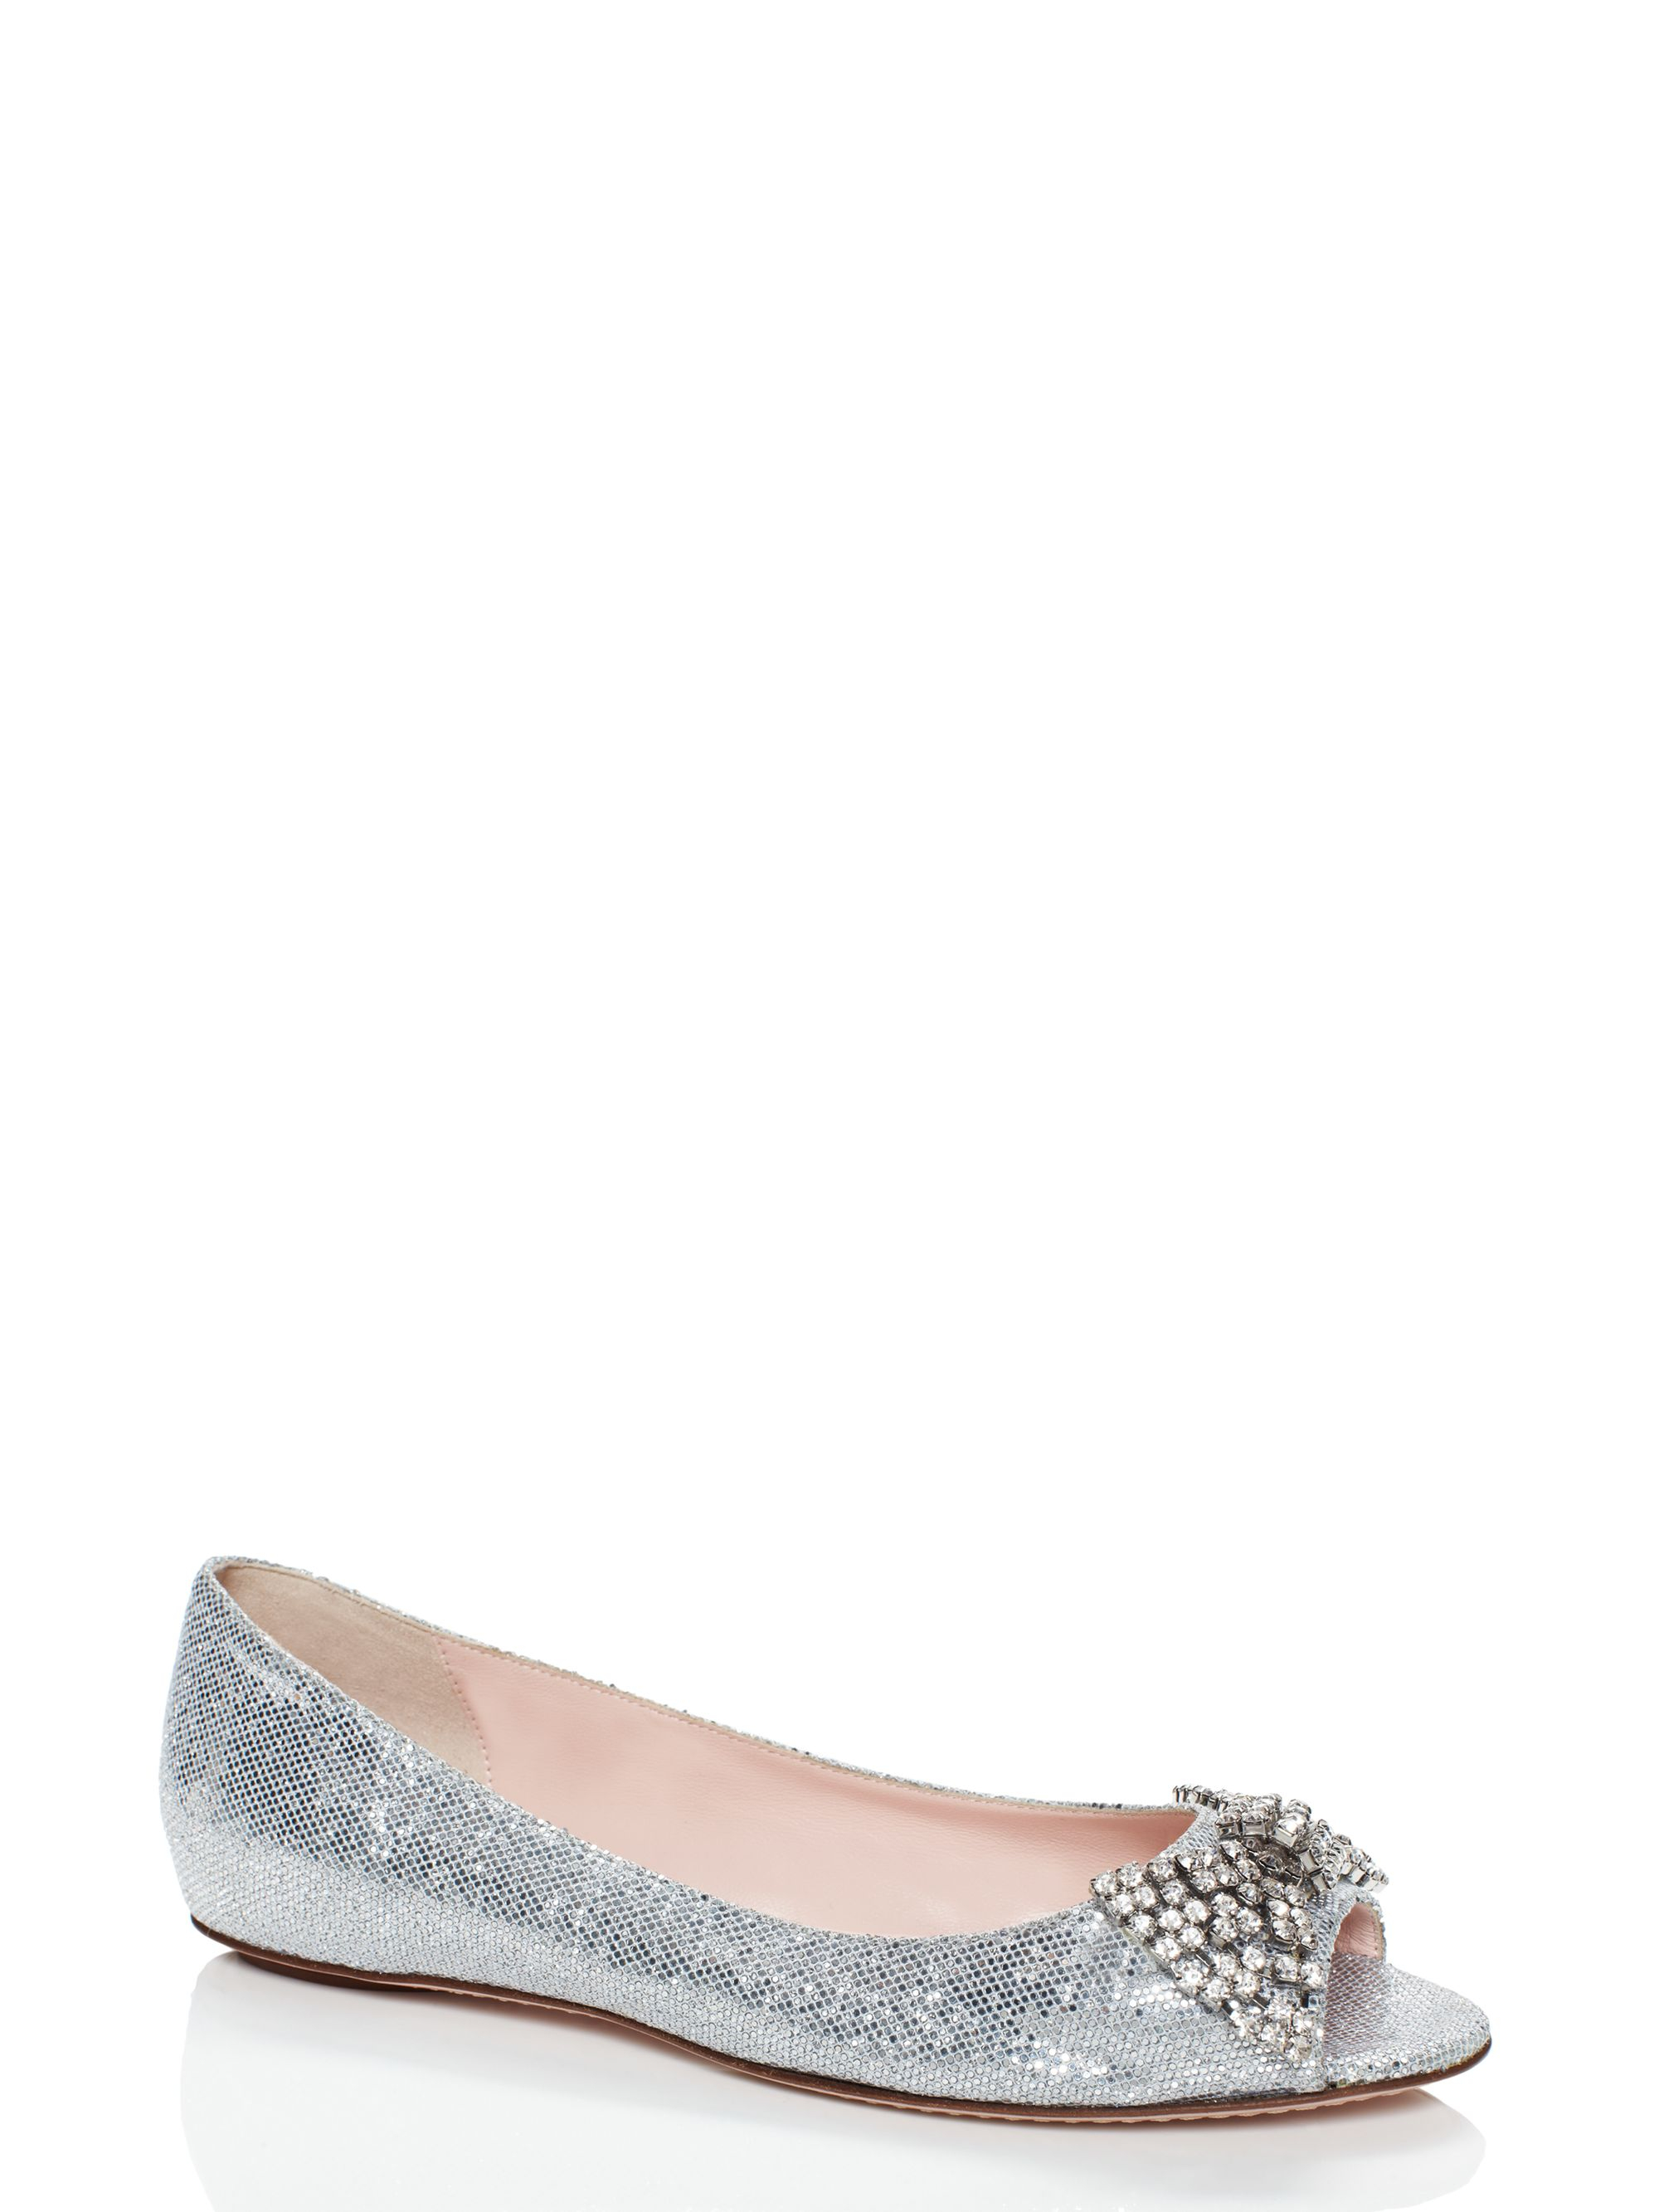 Kate spade new york vanna flats in white lyst for Kate spade new york flats